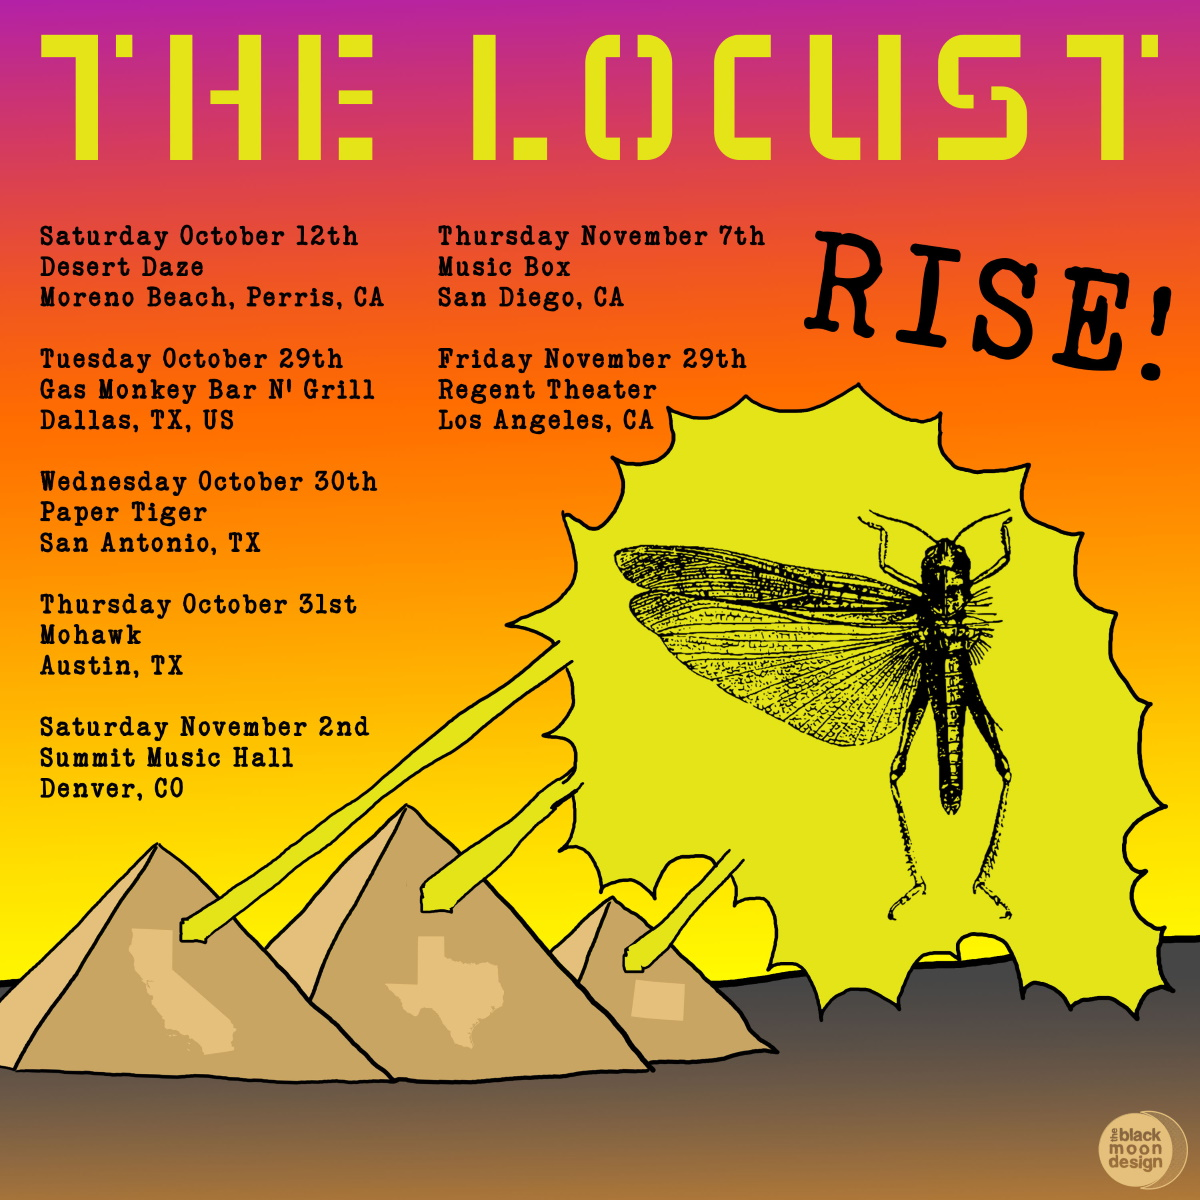 THE LOCUST live shows!